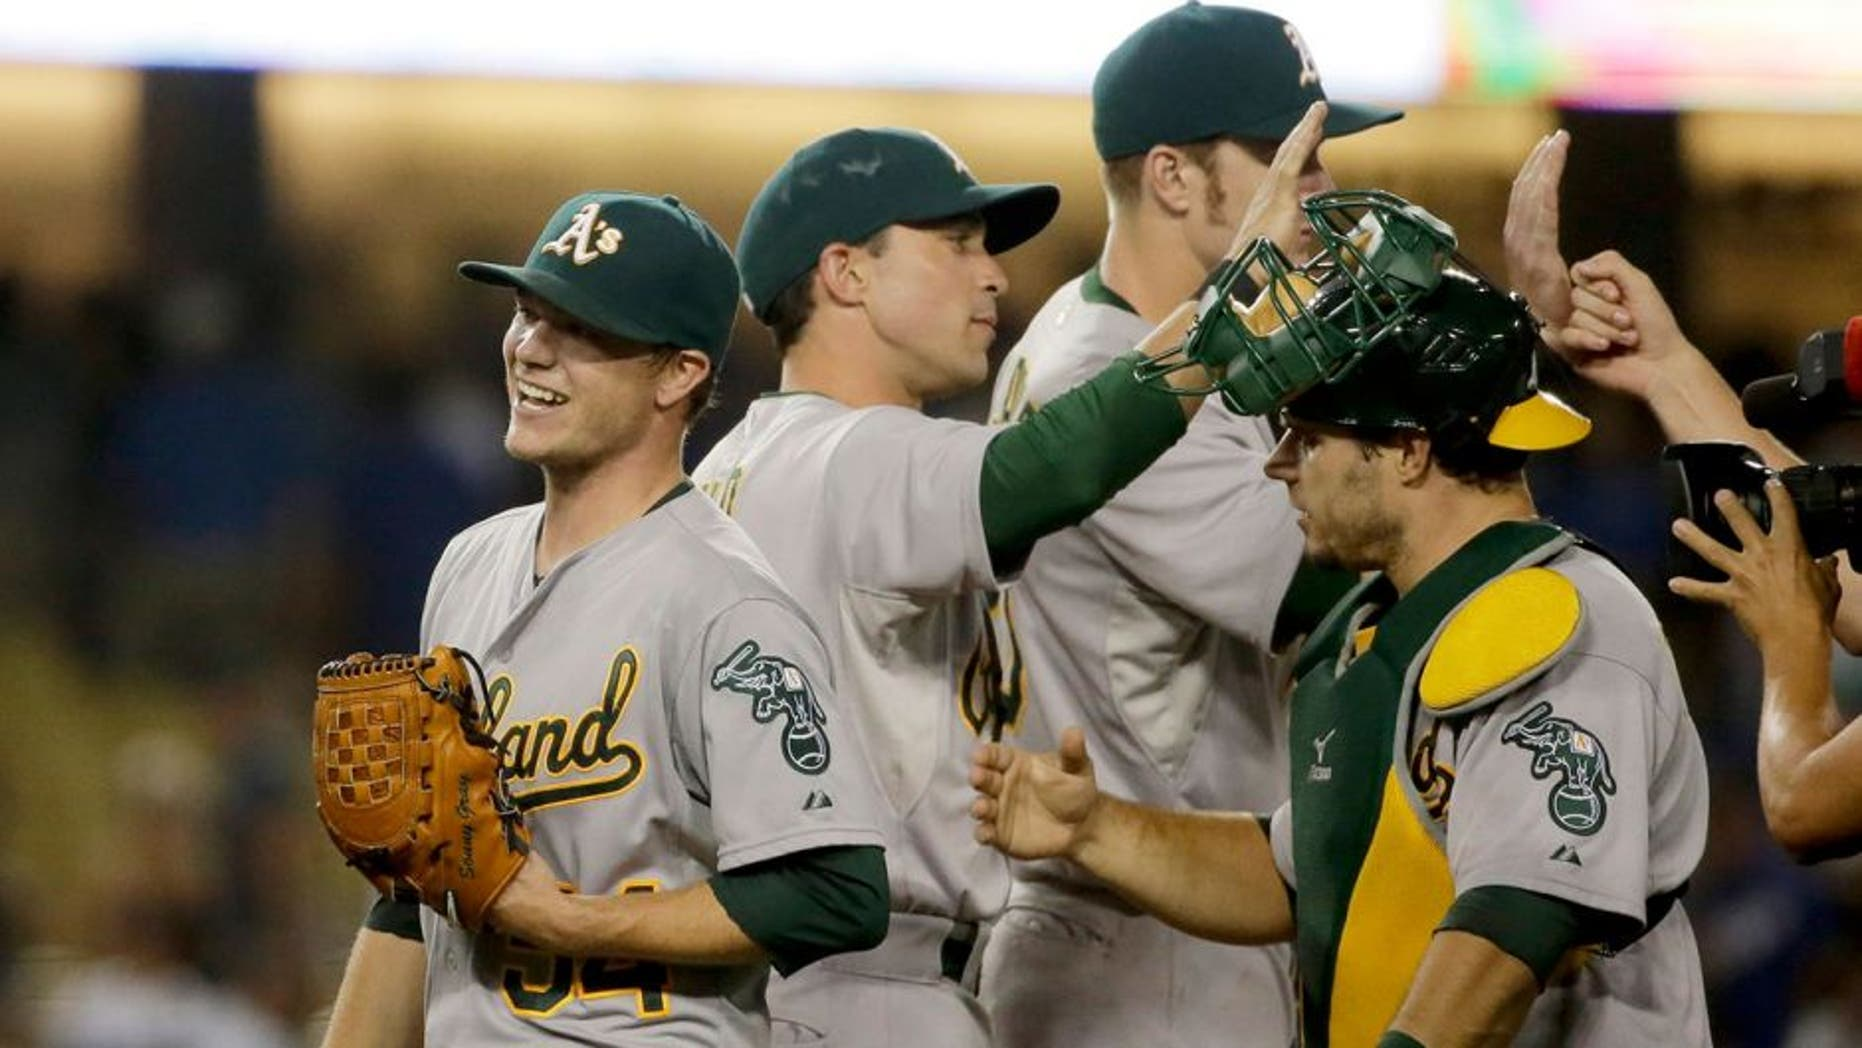 Oakland Athletics starting pitcher Sonny Gray, left, celebrates with teammates after they shutout the Los Angeles Dodgers 2-0 in a baseball game, Tuesday, July 28, 2015, in Los Angeles. (AP Photo/Chris Carlson)